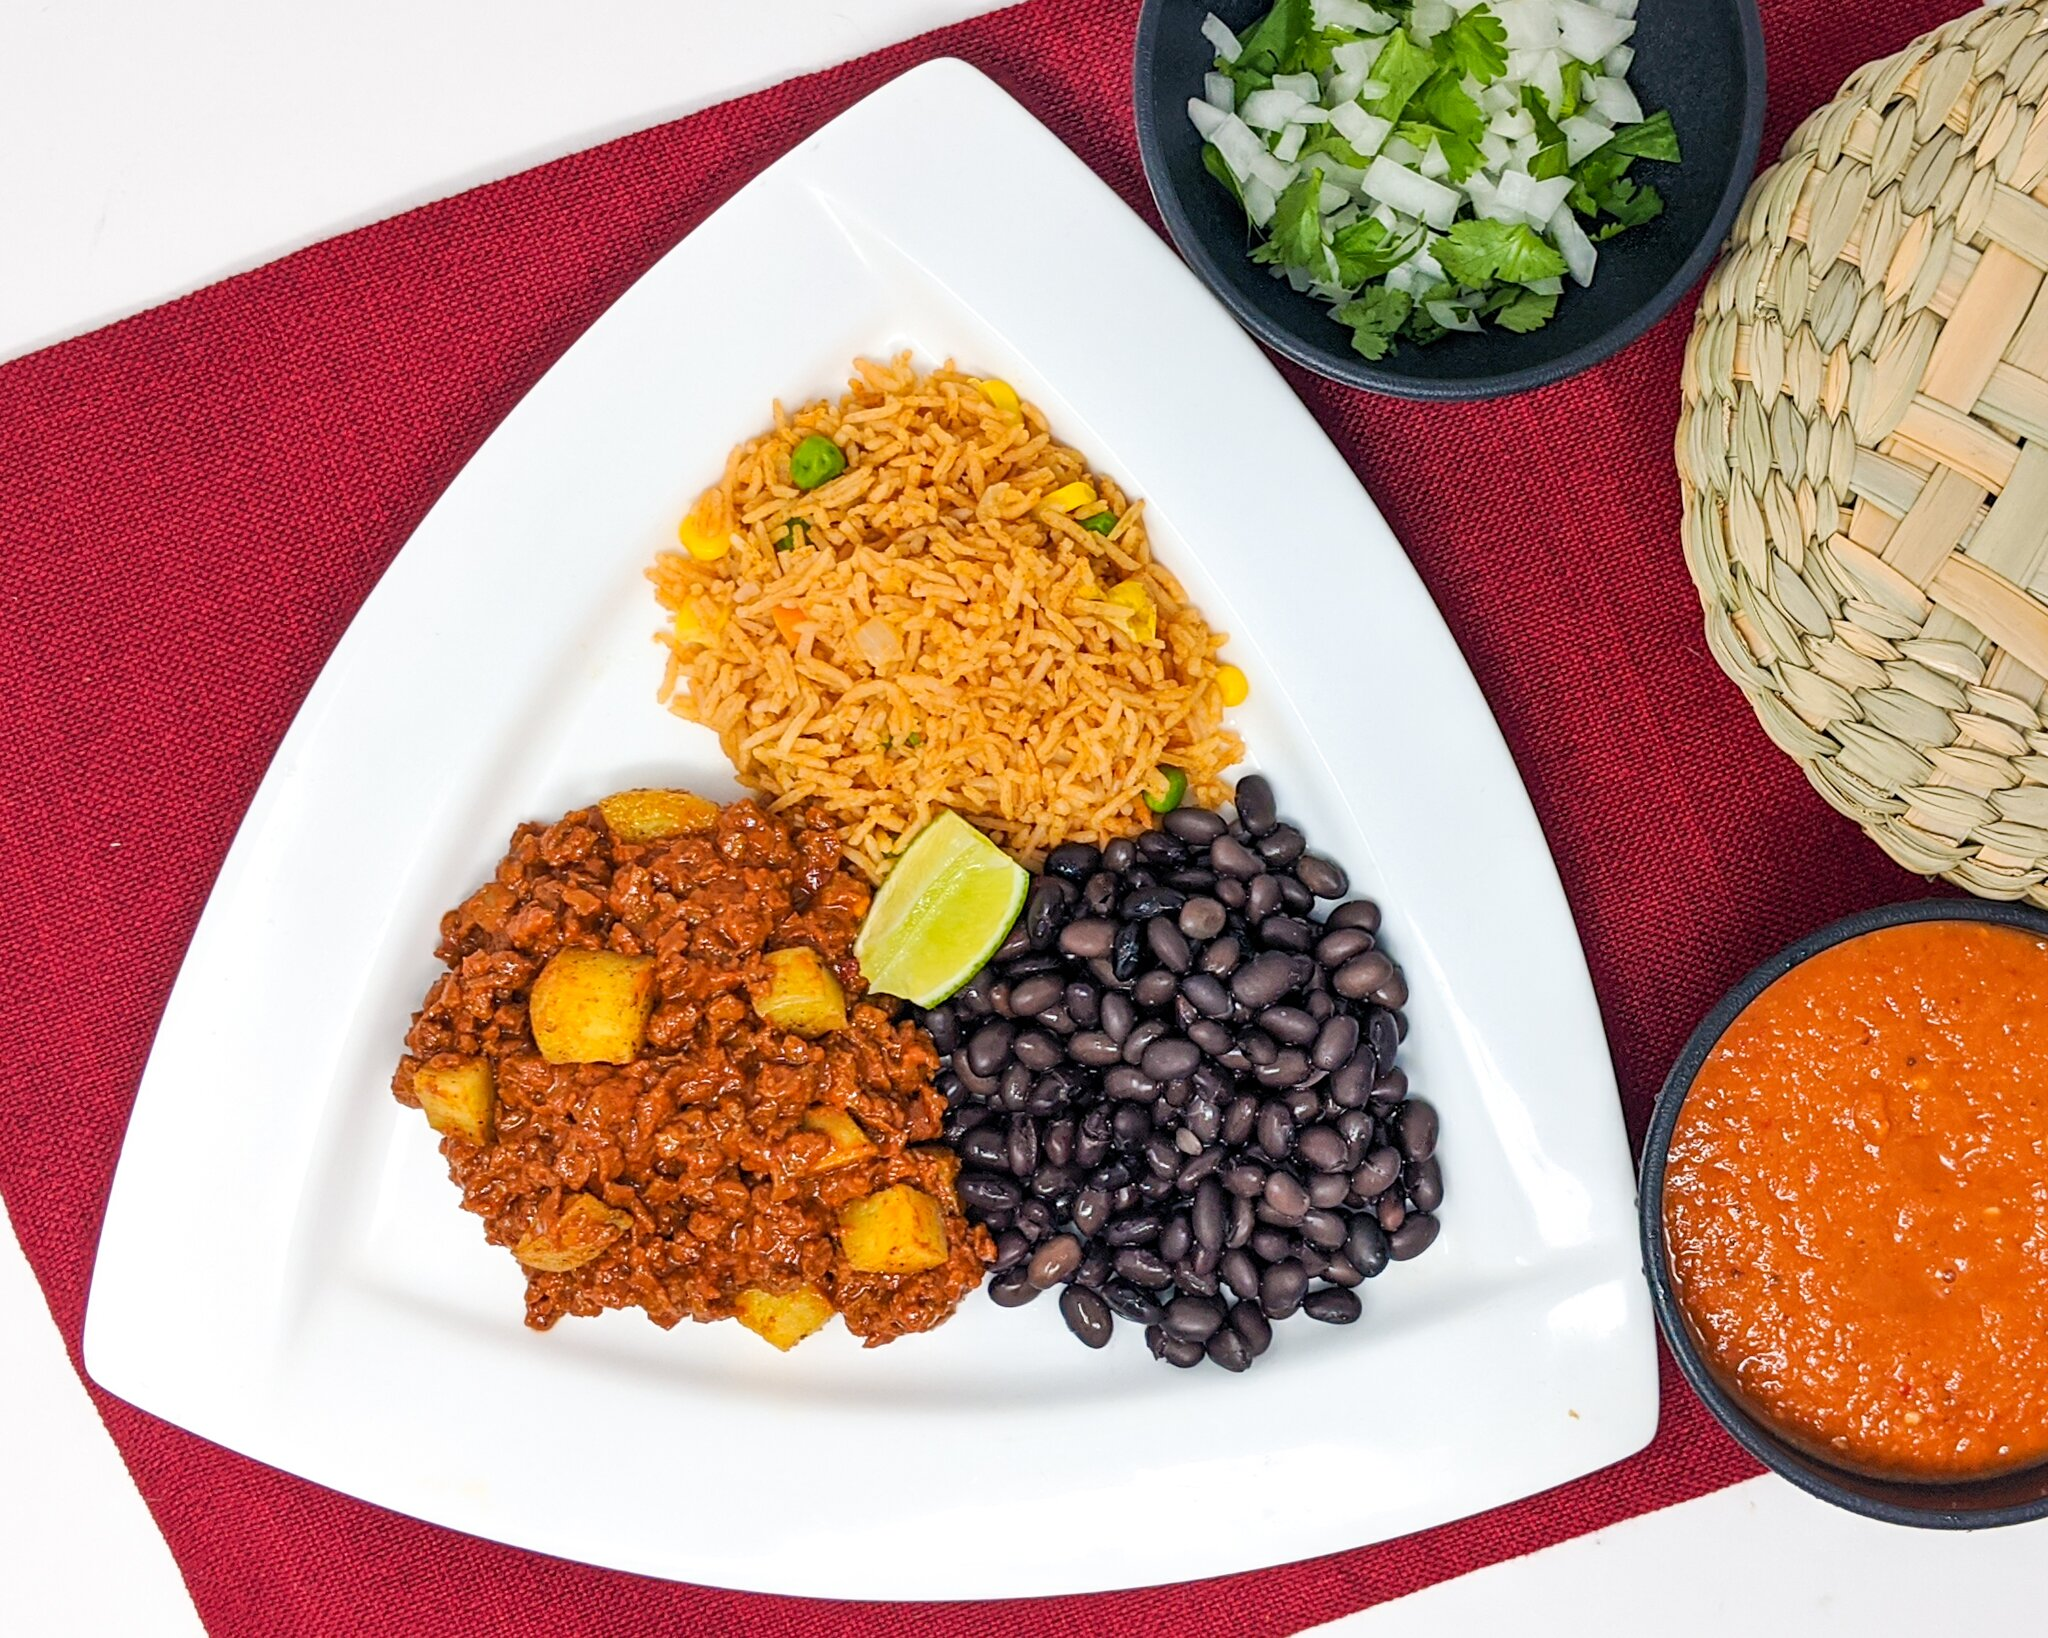 Vegan taco plate with soyrizo, potatoes, rice, beans, and salsa for catering}